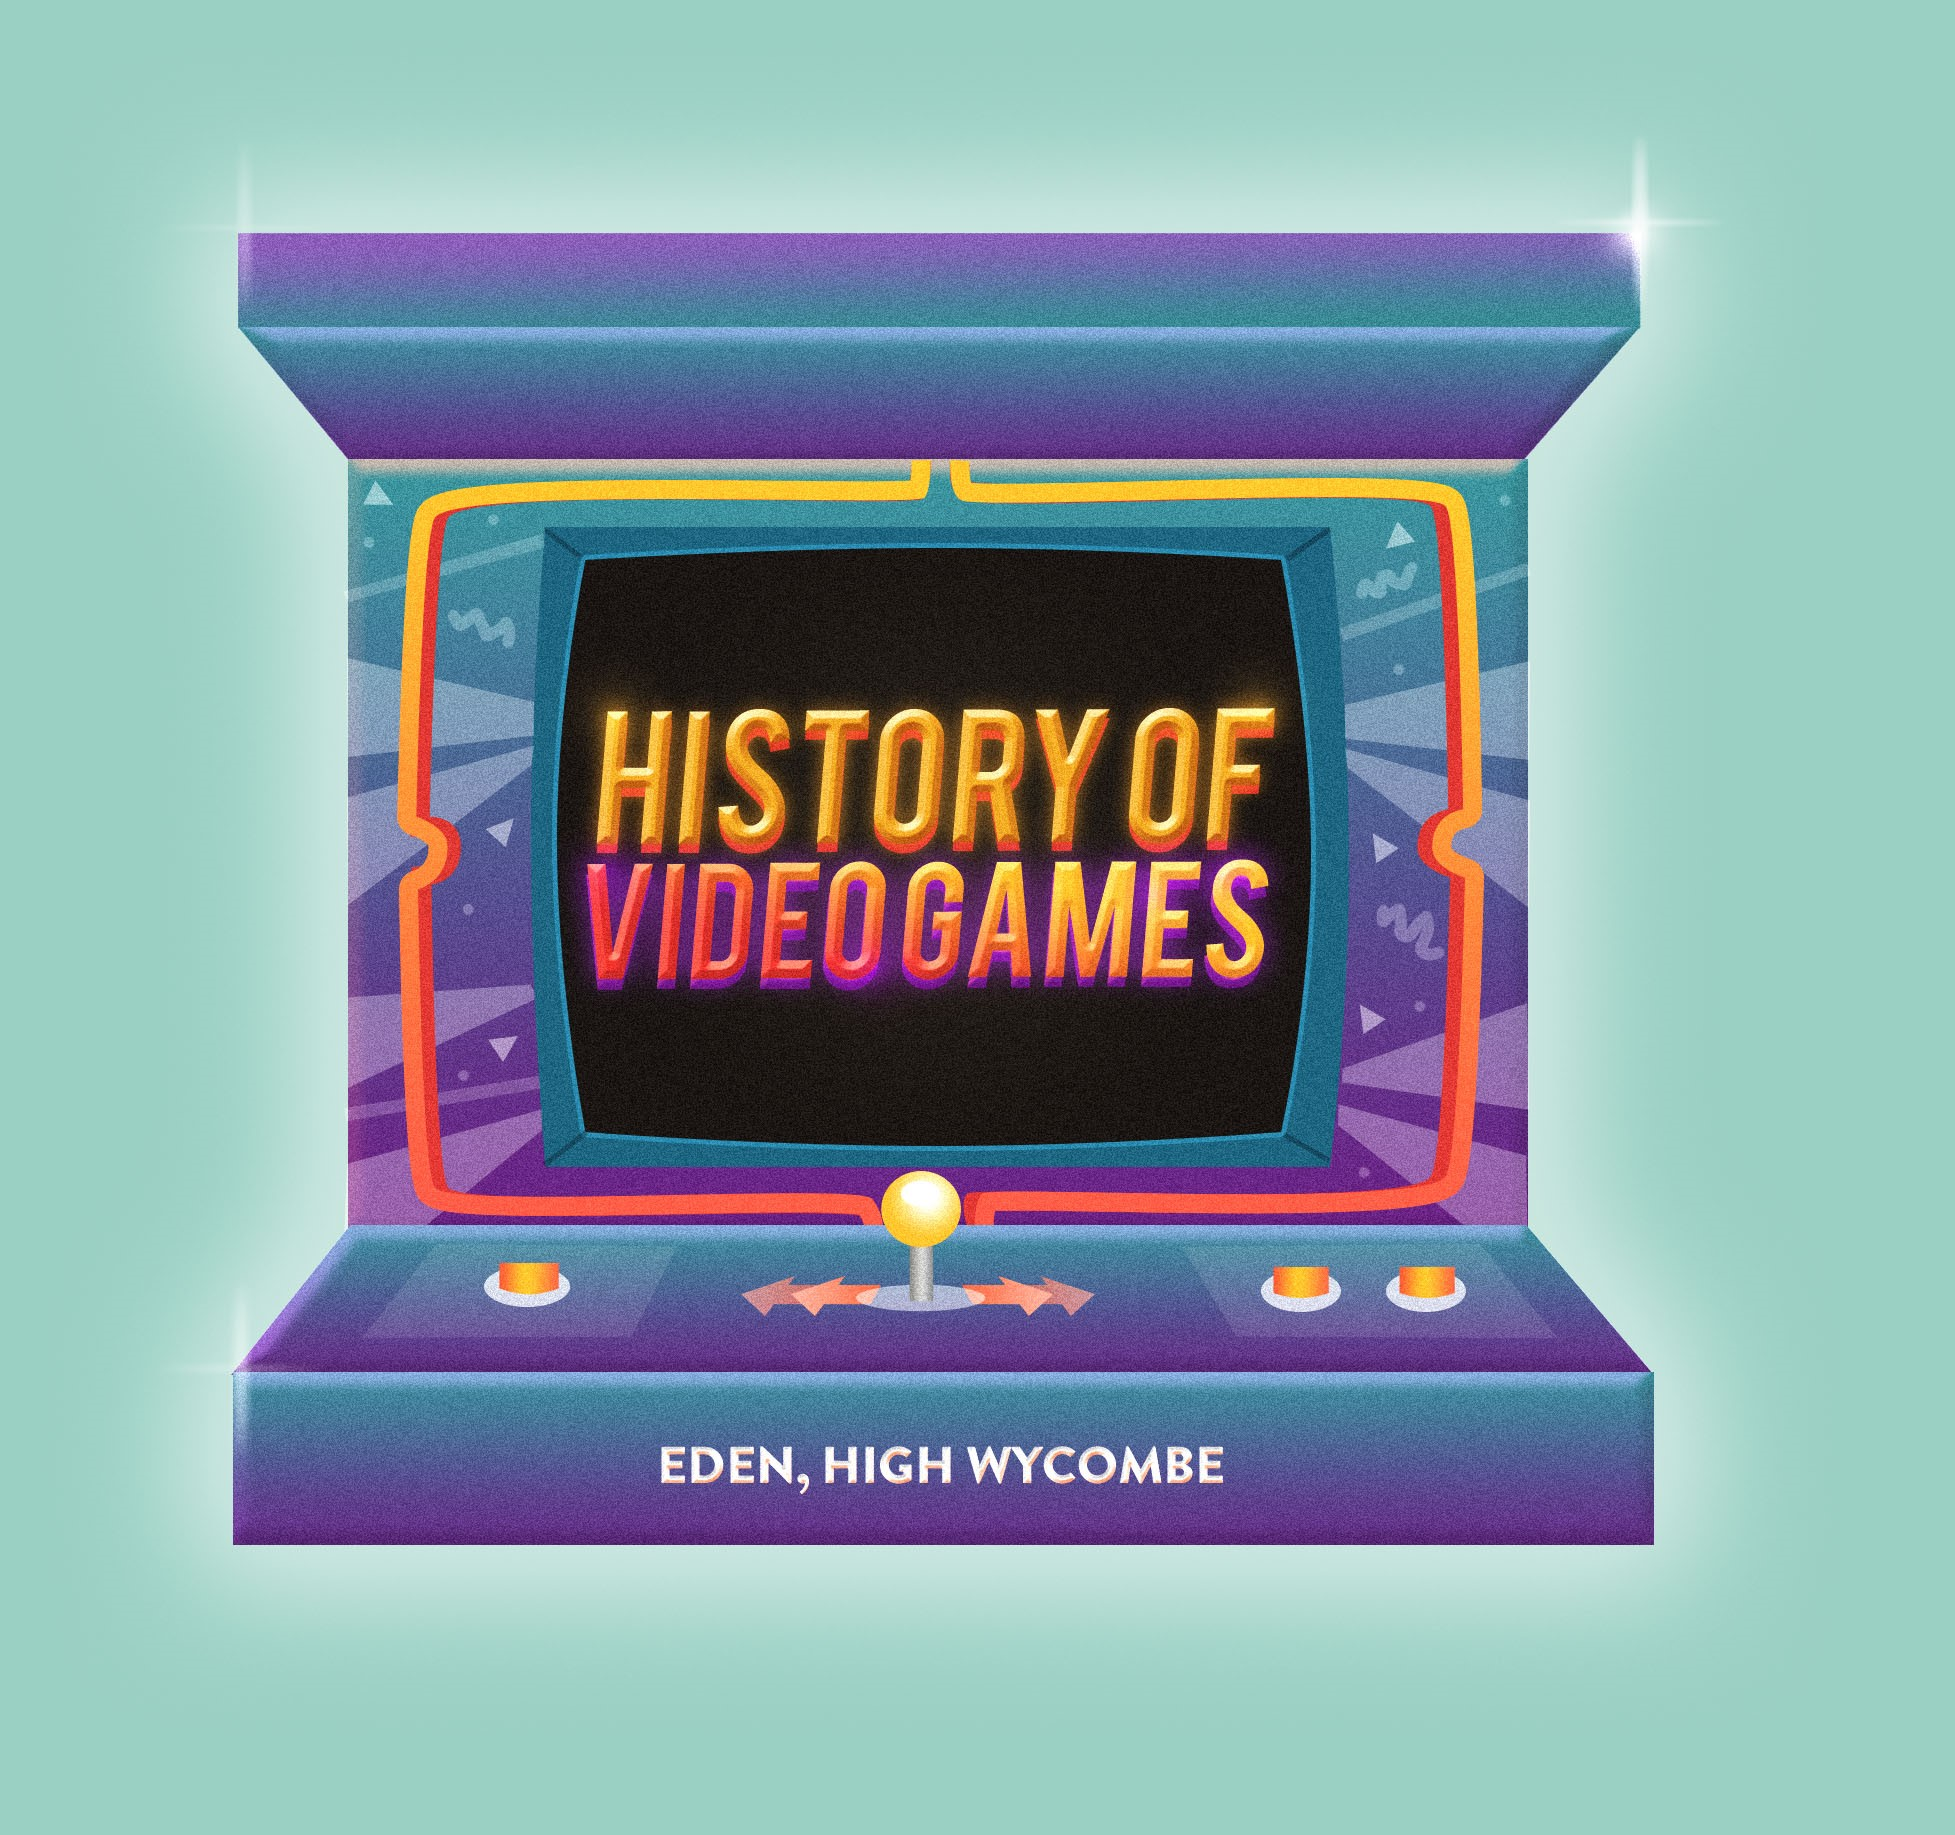 History of Video Games at Eden Shopping Centre